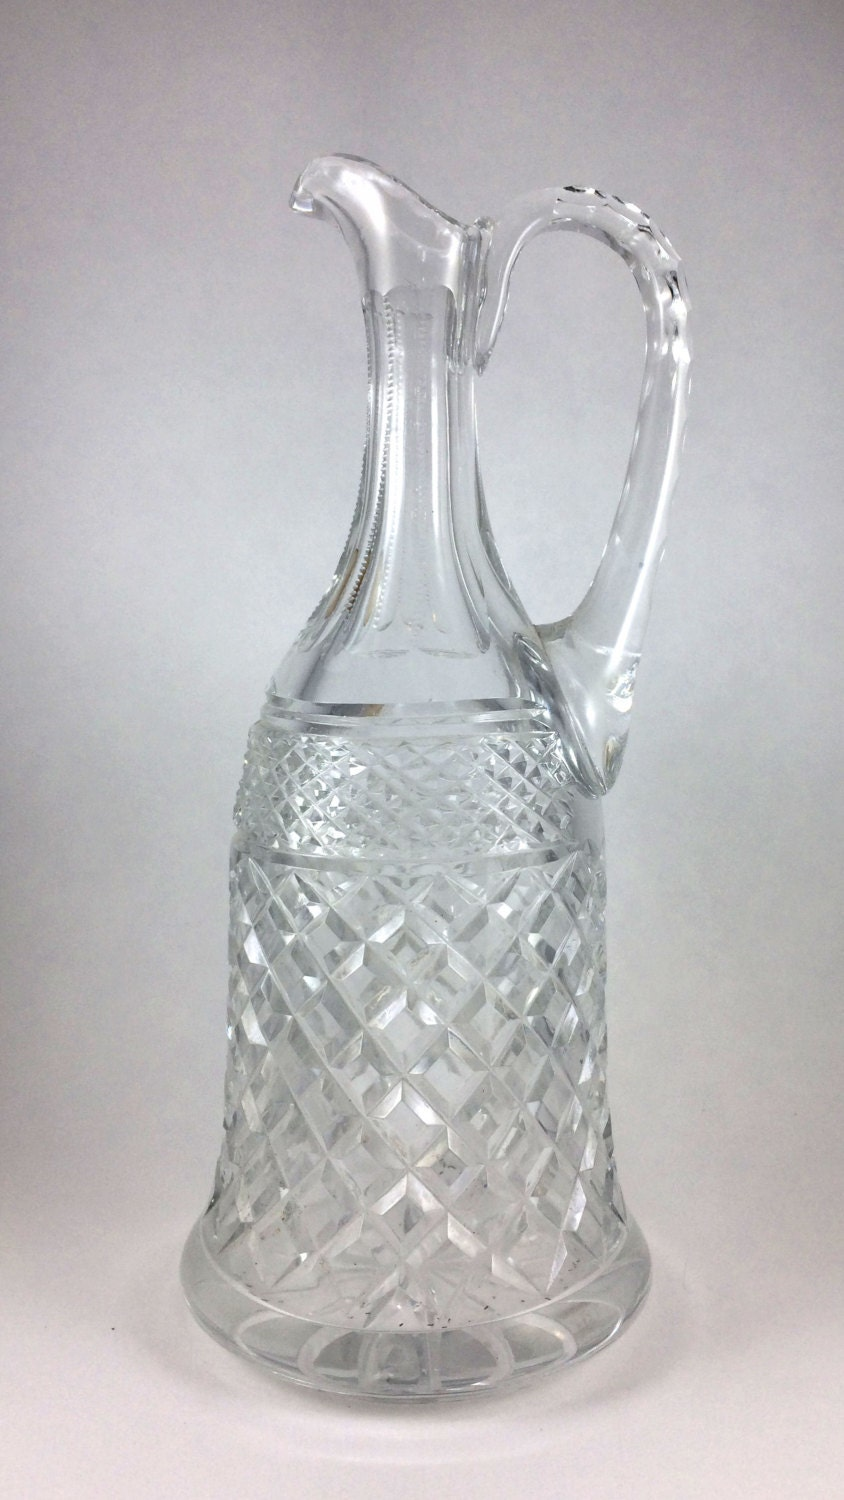 Lead Crystal Decanter made in Poland 11 inch